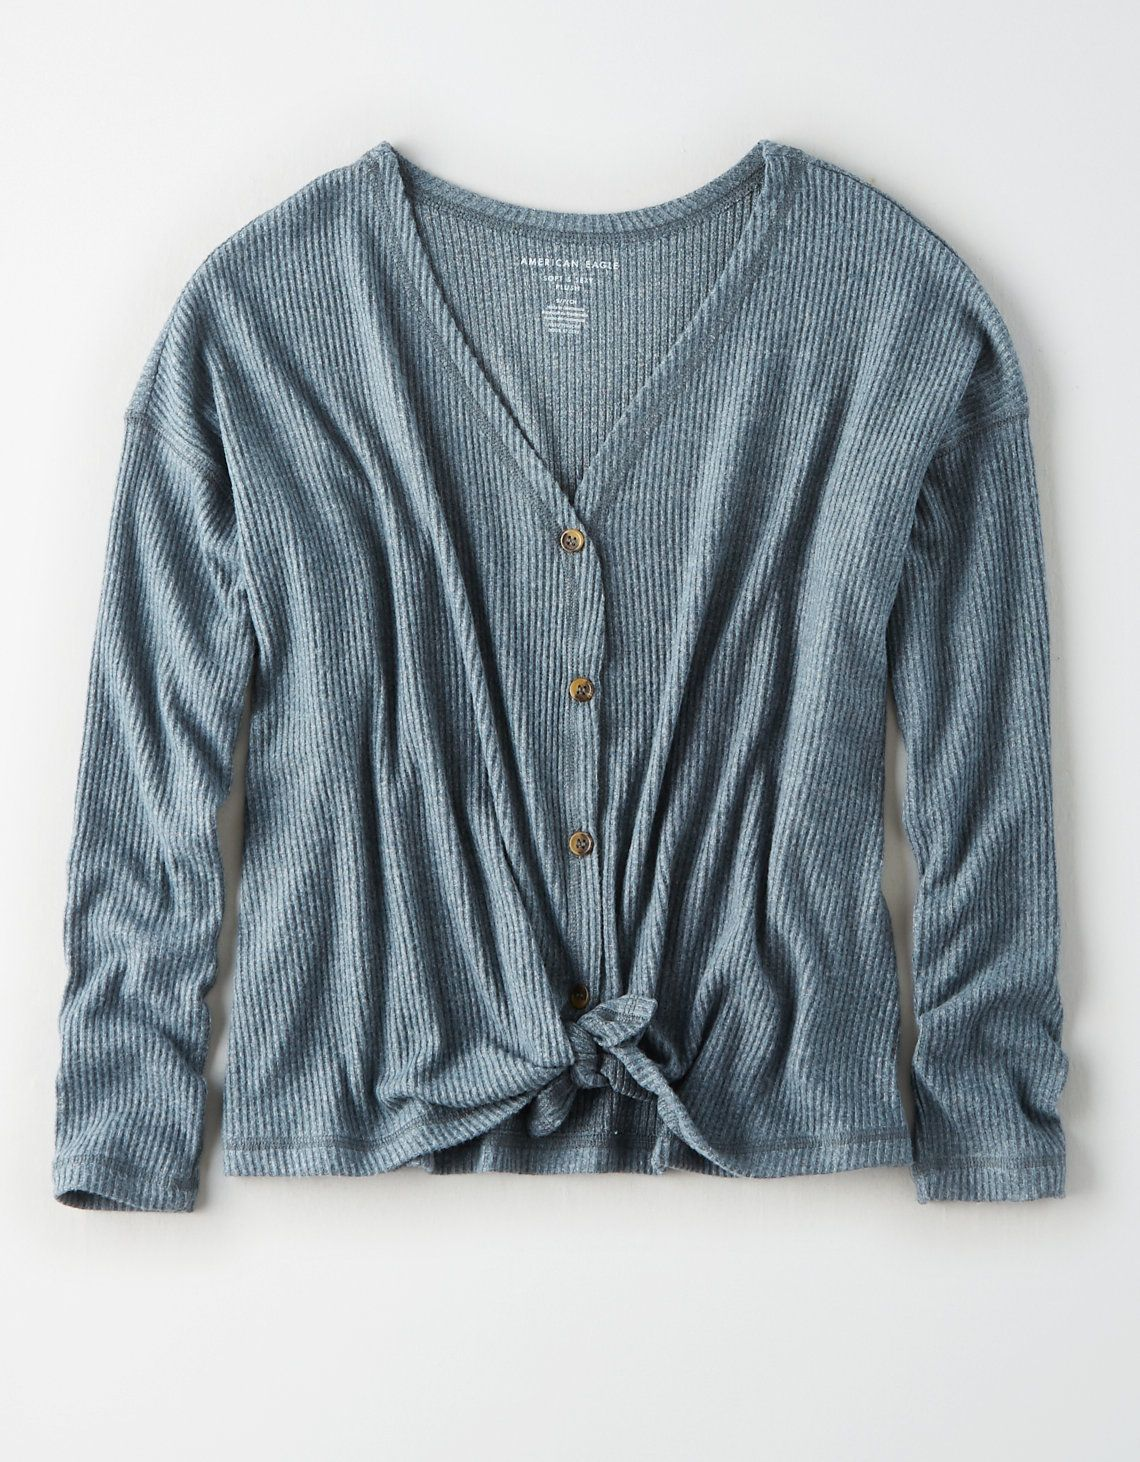 American Eagle Outfitters Mens & Womens Clothing Shoes & Accessories - Eagle Shirt - Ideas of Eagle Shirt #Eagle Shirt -   AE Plush V-Neck Button Up Sweatshirt Blue   American Eagle Outfitters